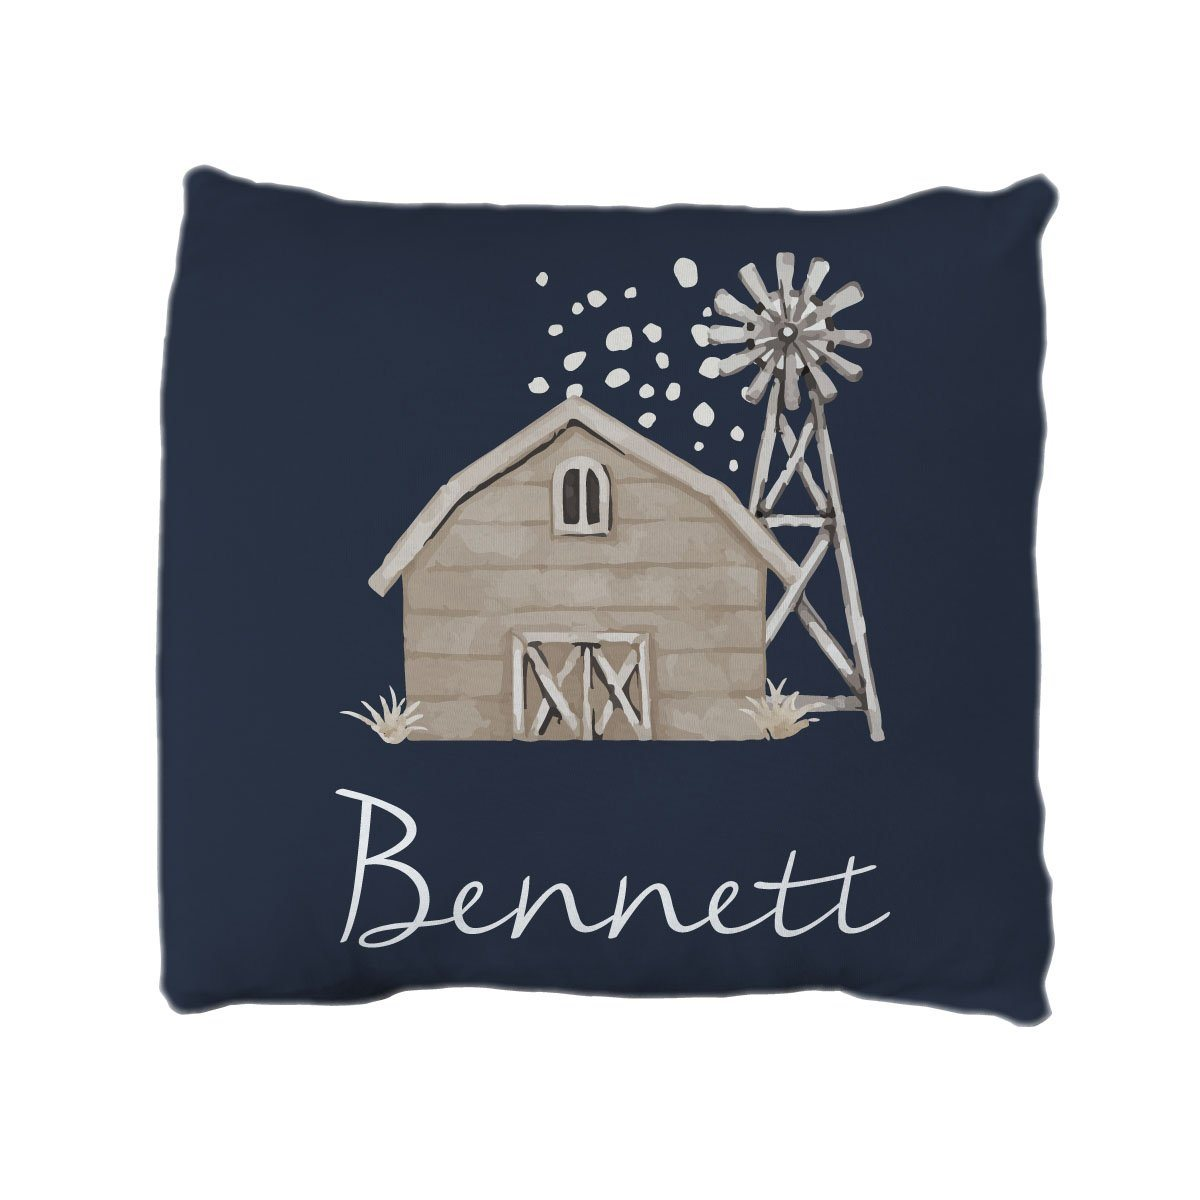 Bennett's Modern Farmhouse | Big Kid Throw Pillow